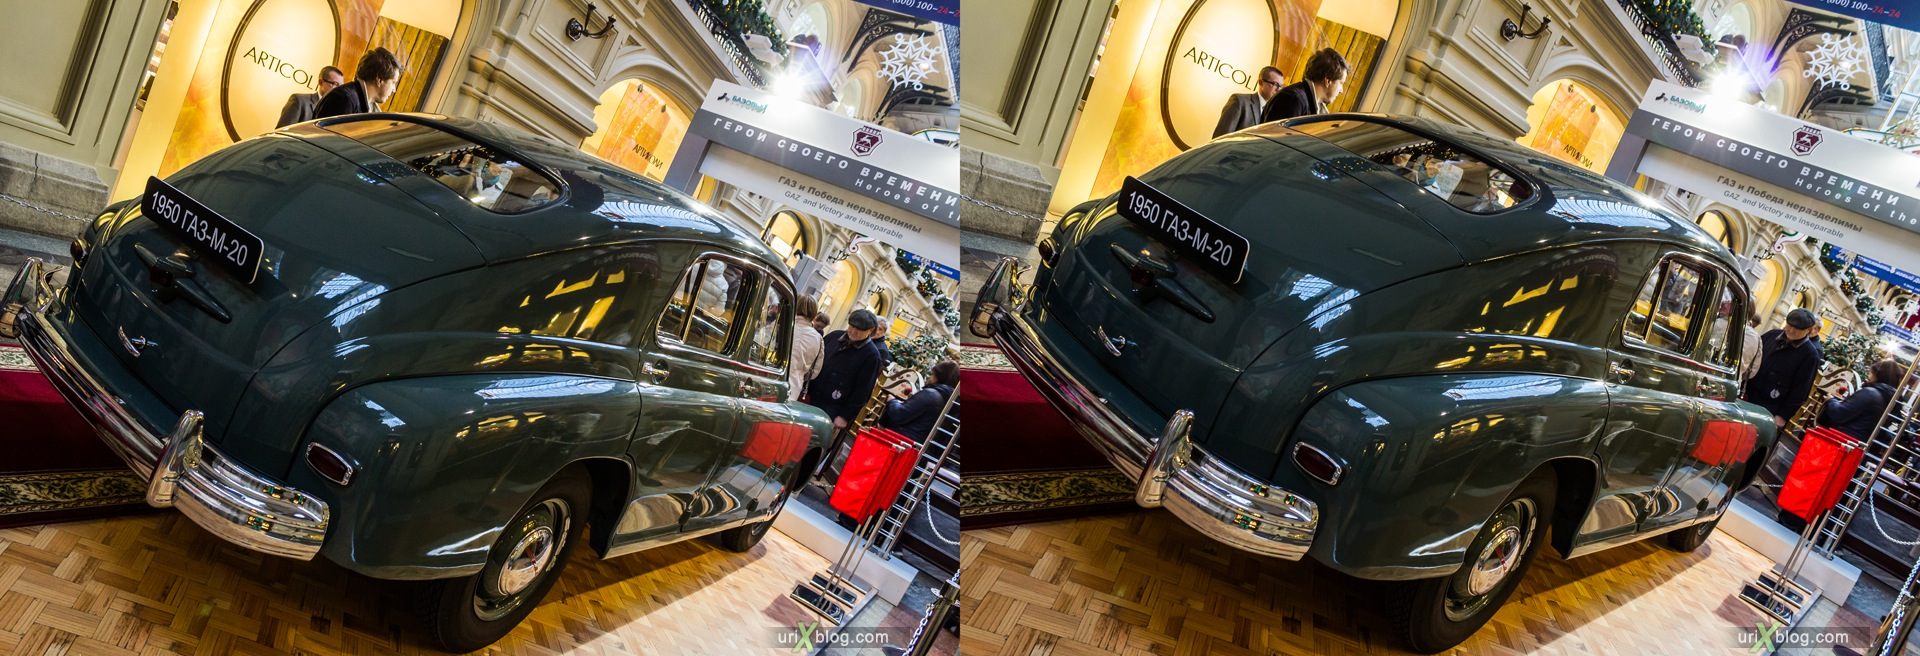 2013, Moscow, Russia, GAZ-M-20, GUM, old, automobile, vehicle, exhibition, shop, mall, 3D, stereo pair, cross-eyed, crossview, cross view stereo pair, stereoscopic